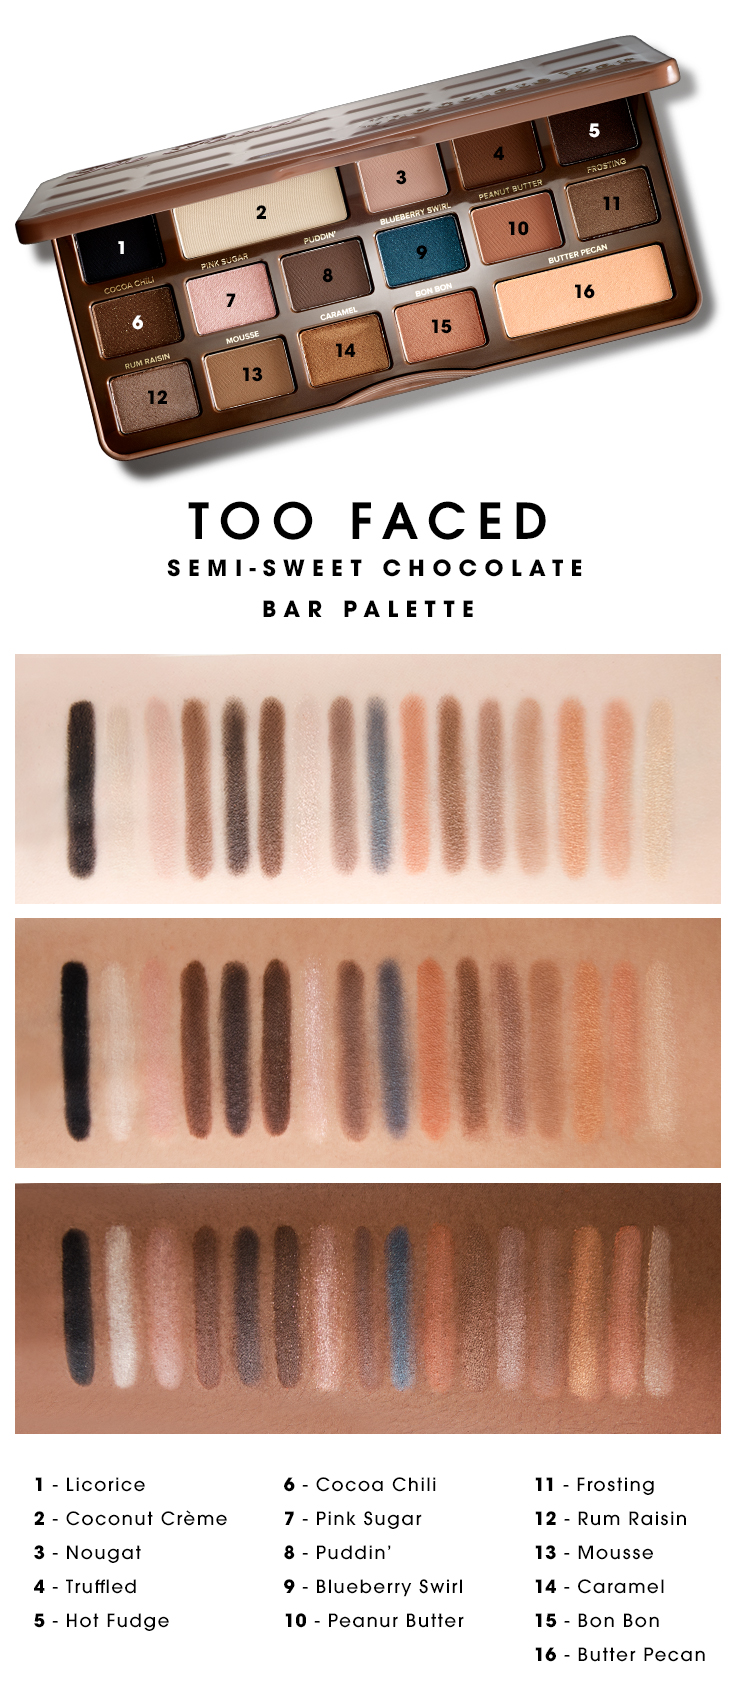 Too Faced Semi-Sweet Chocolate Bar Palet...